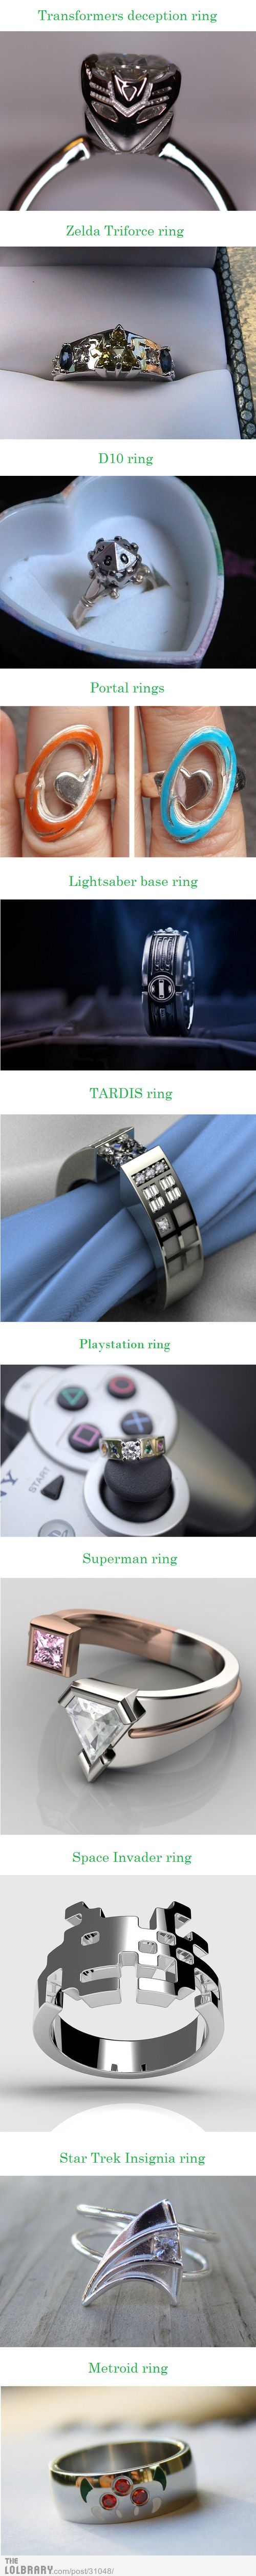 Coolest Rings Ever!